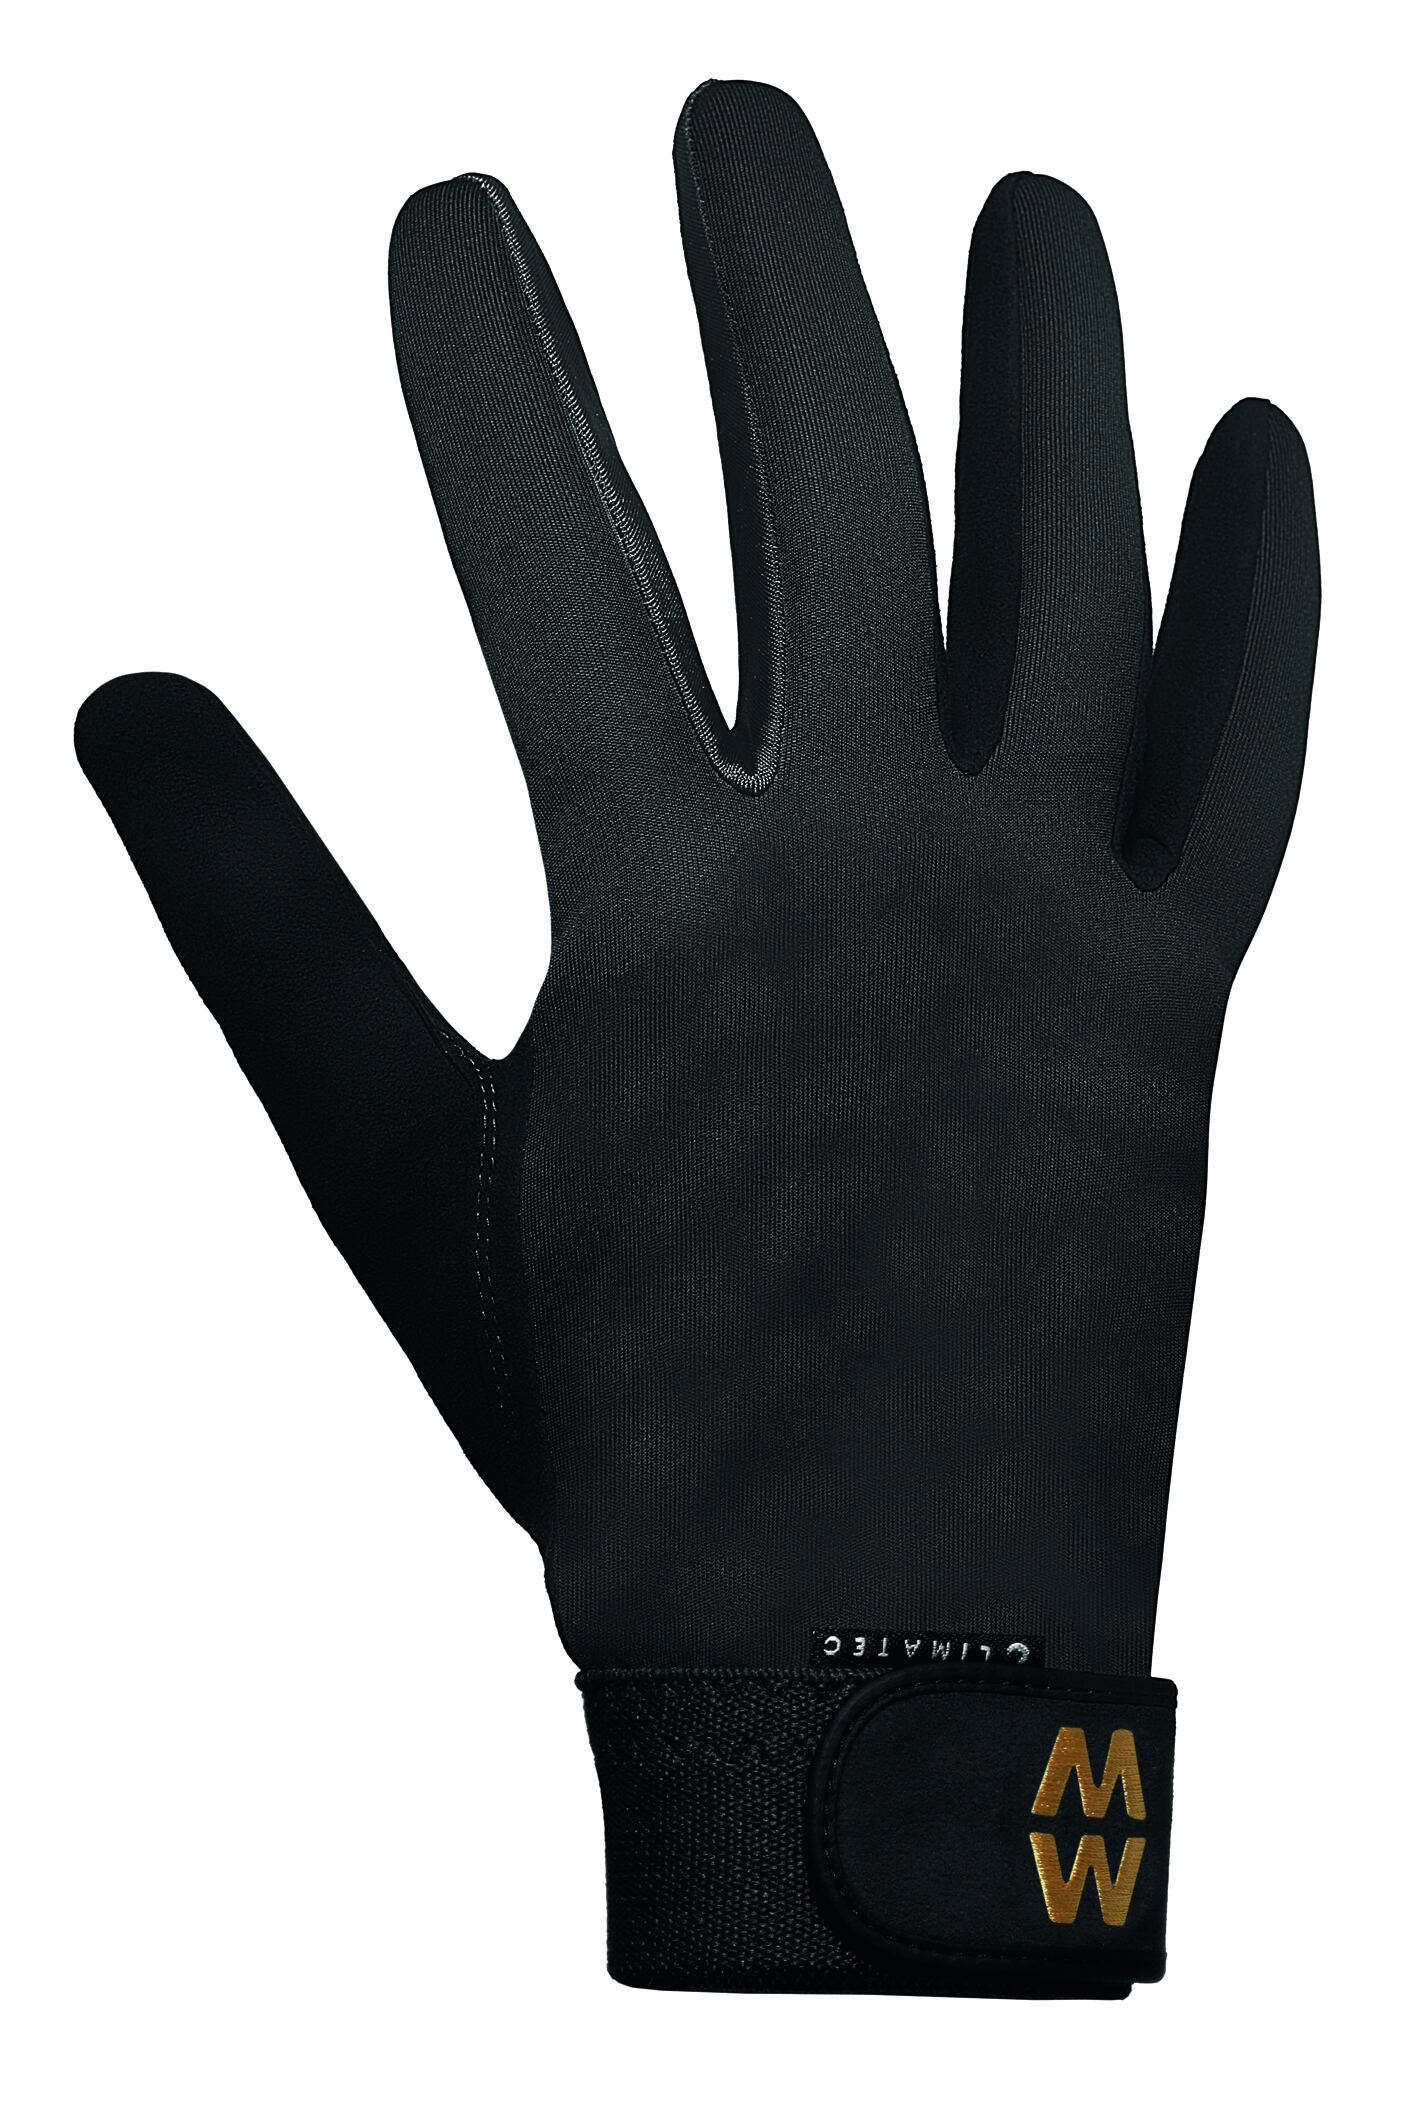 Image of 1 Pair Black MacWet Long Climatec Sports Gloves Unisex 11 Unisex - Macwet